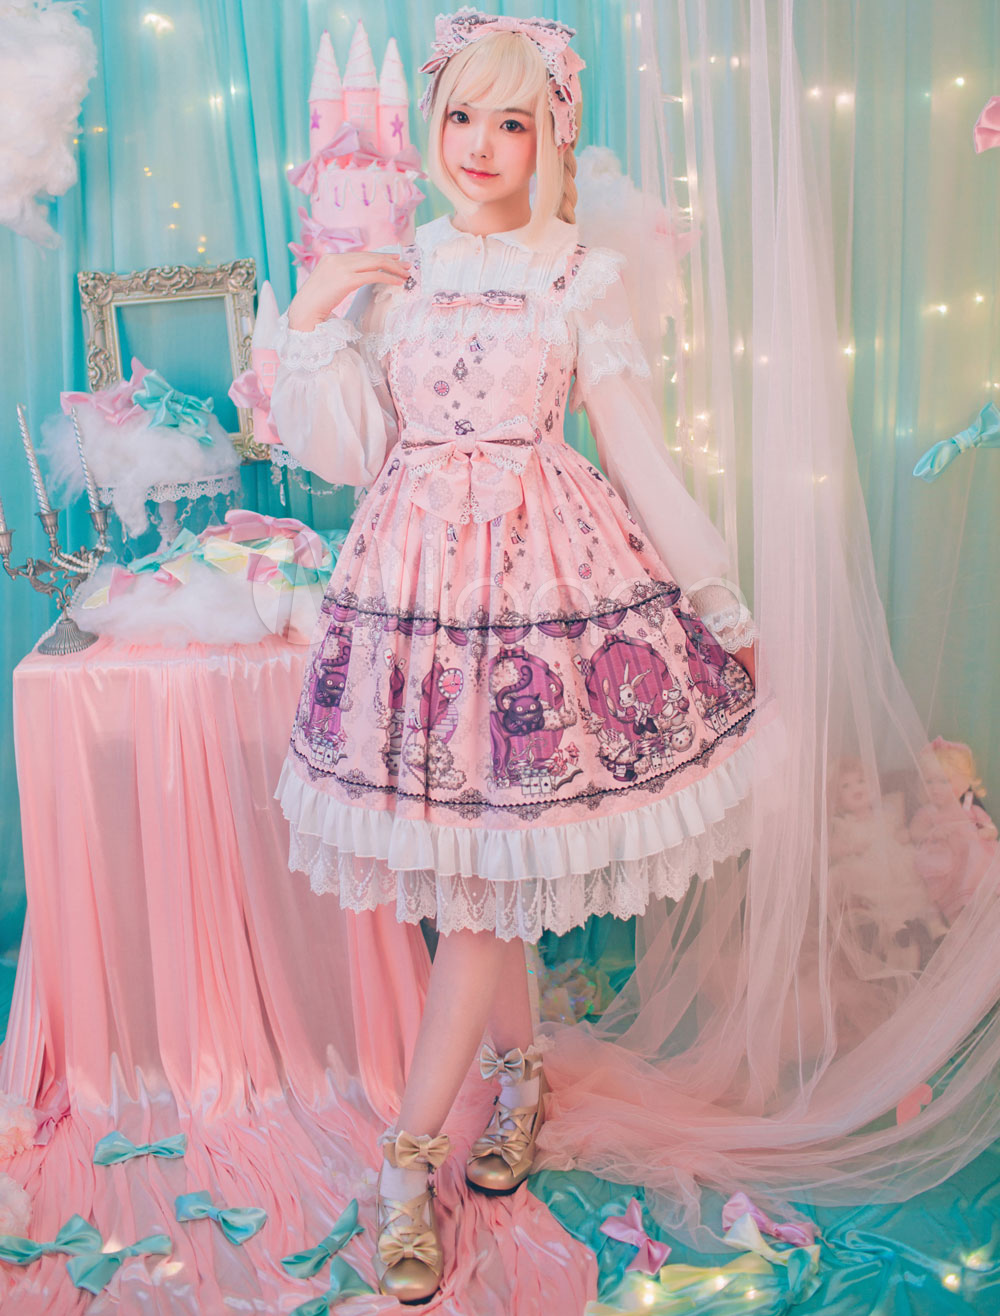 Buy Sweet Lolita JSK Jumper Skirt Fairytale Print Chiffon Frills Pink Lolita Dresses With Bows for $163.99 in Milanoo store